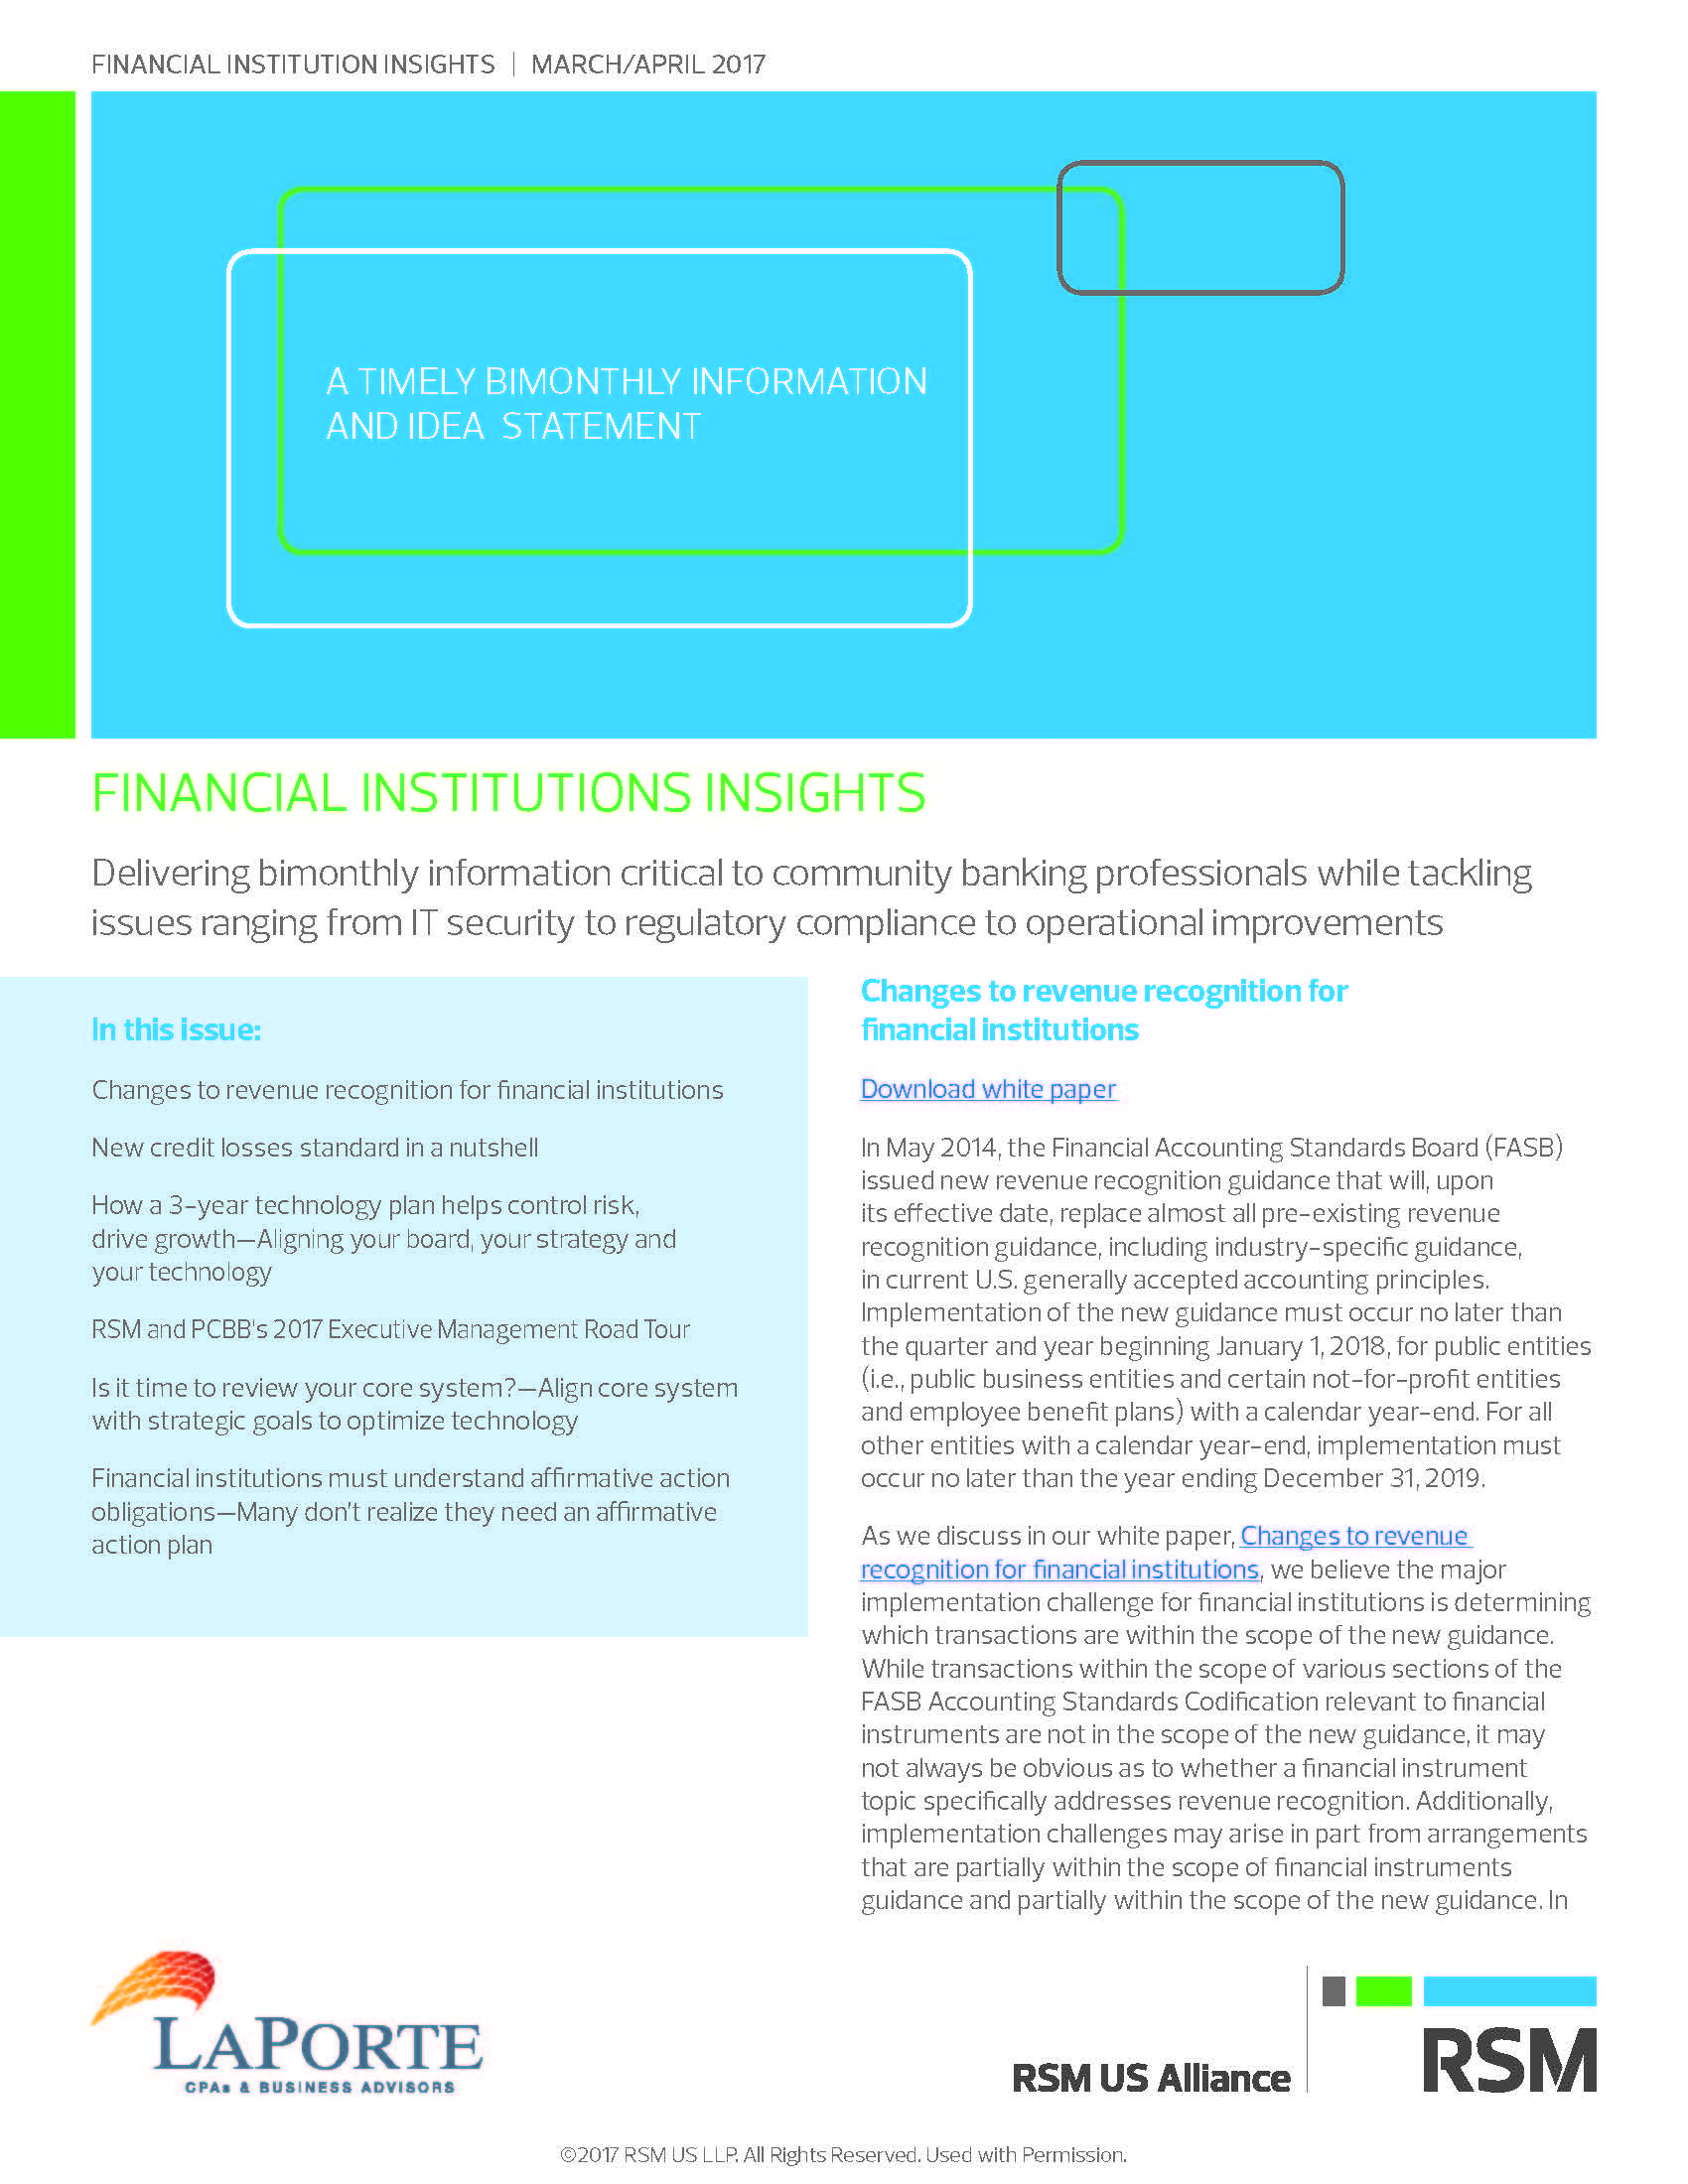 Financial Institutions Insights March April 2017